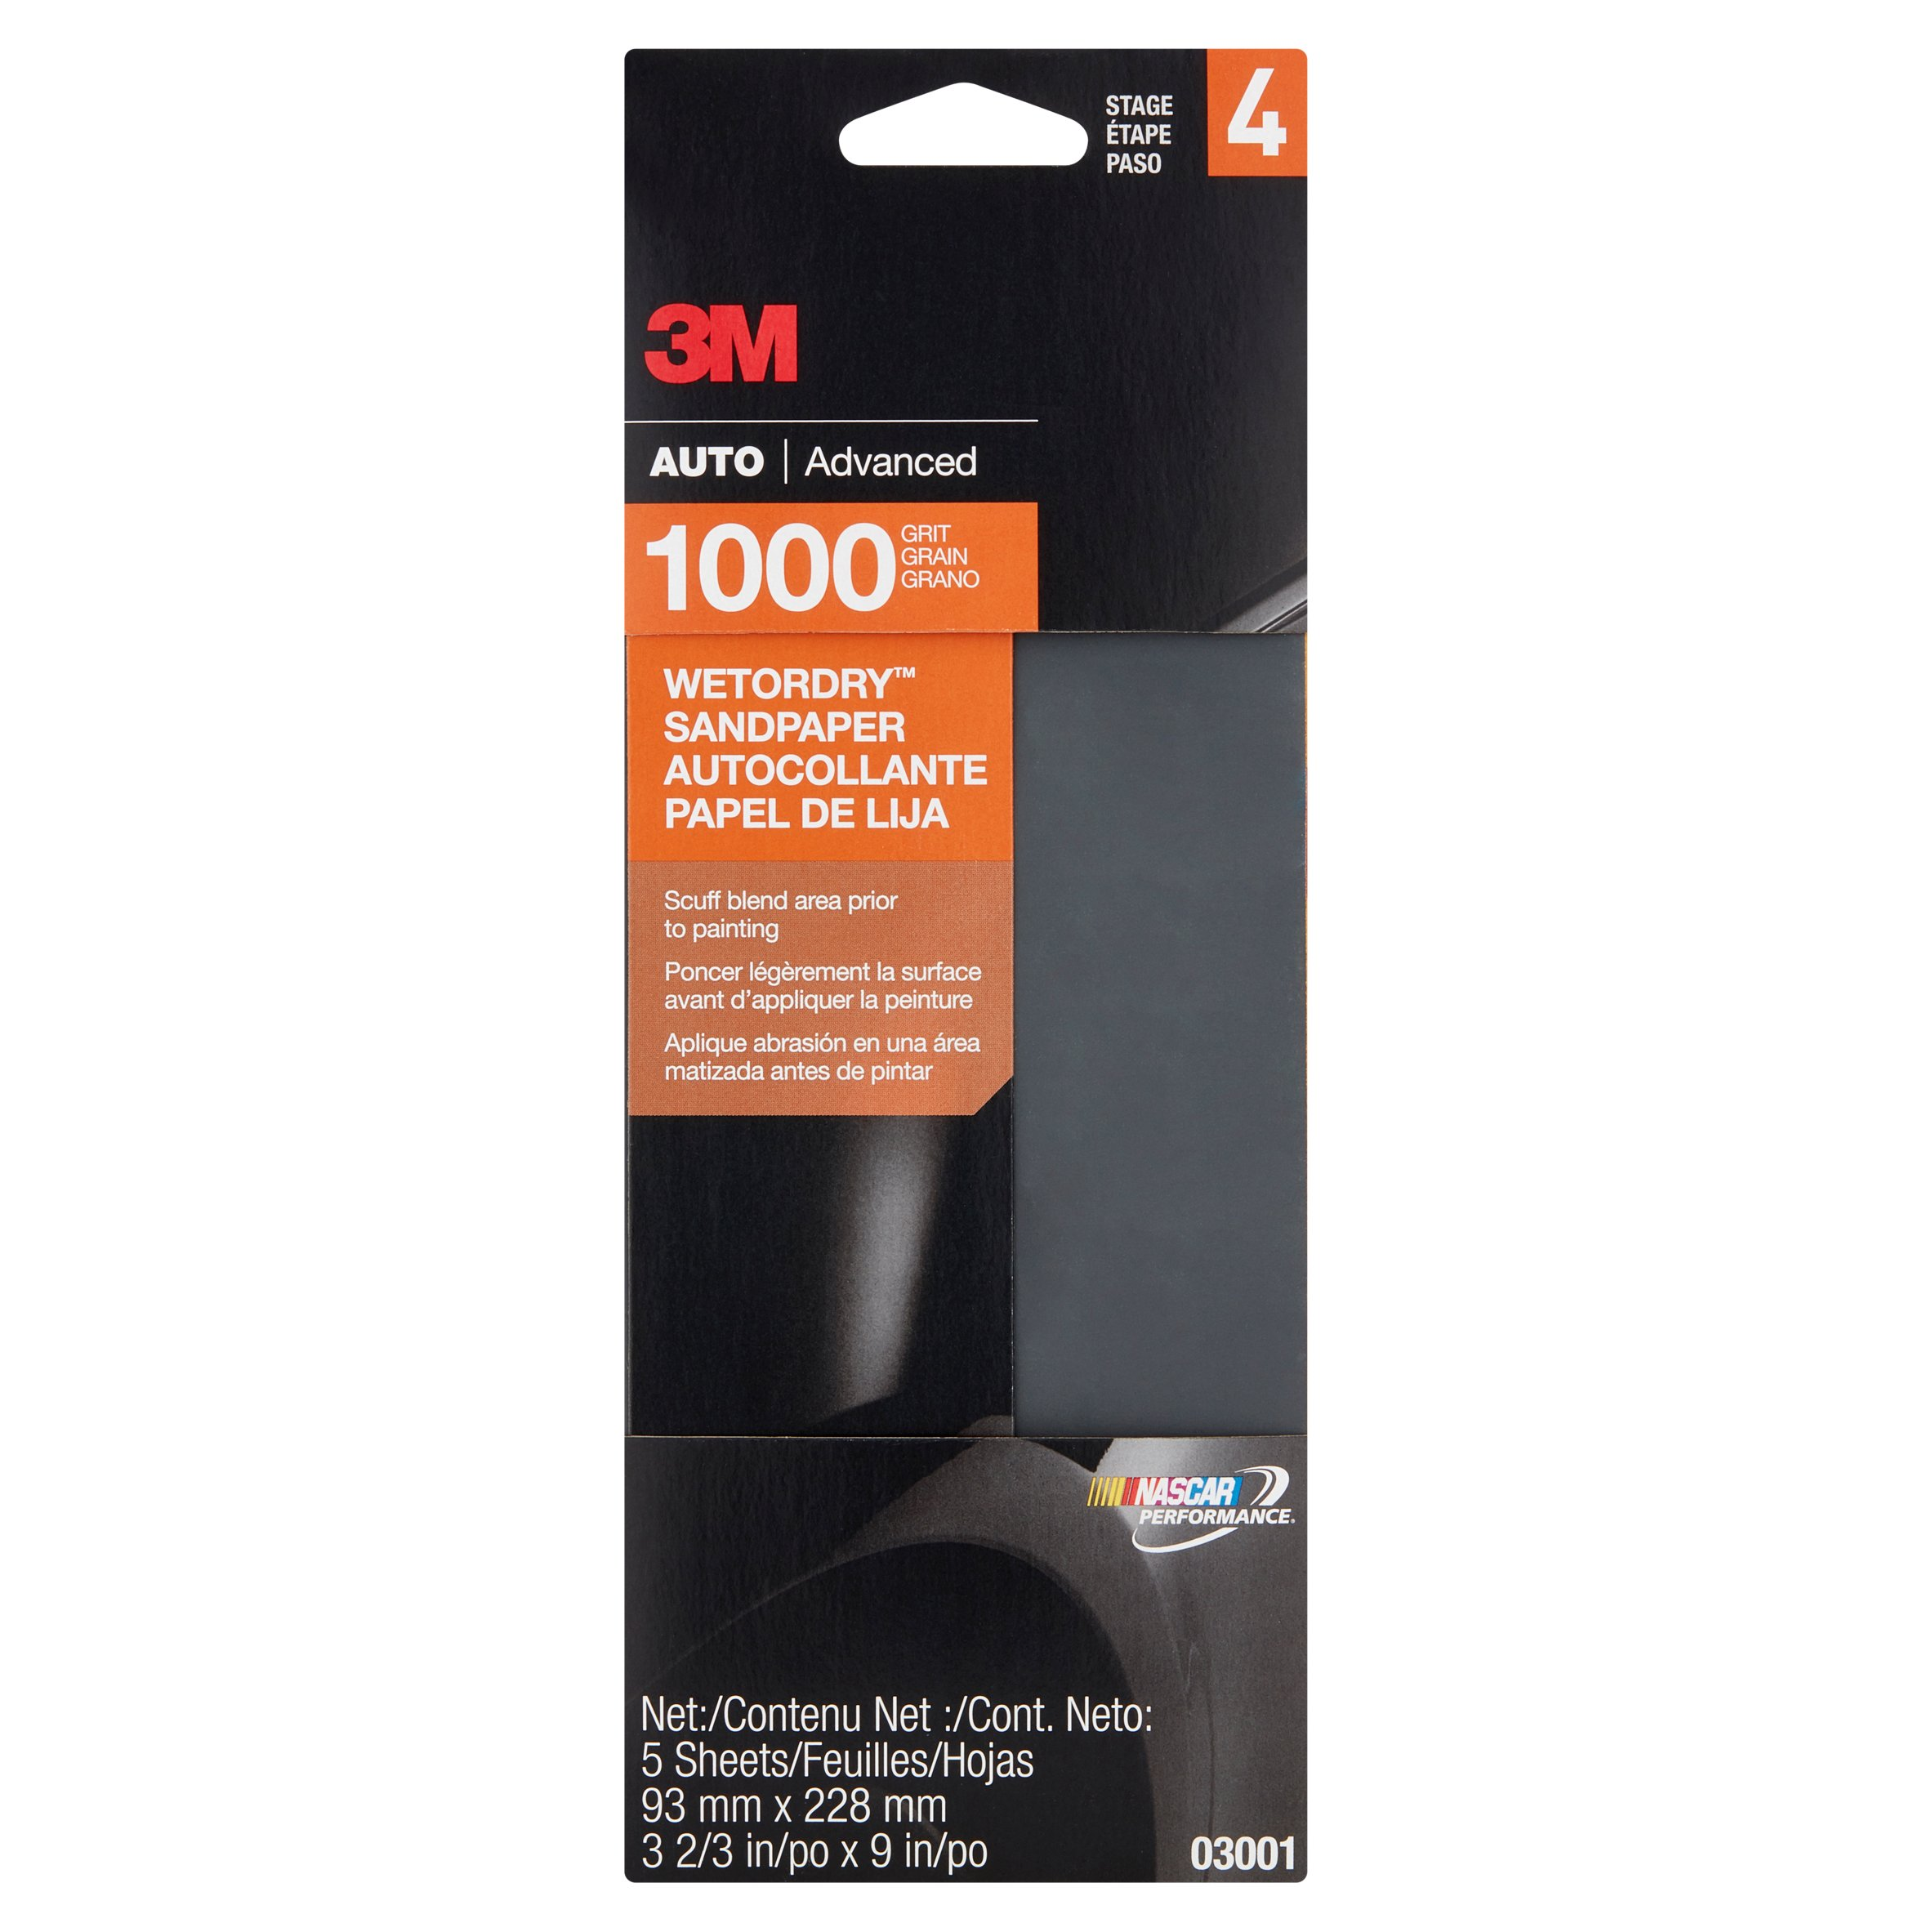 3M Nascar Performance Auto Advanced 1000 Grit Sandpaper Stage 4, 5 count by 3M